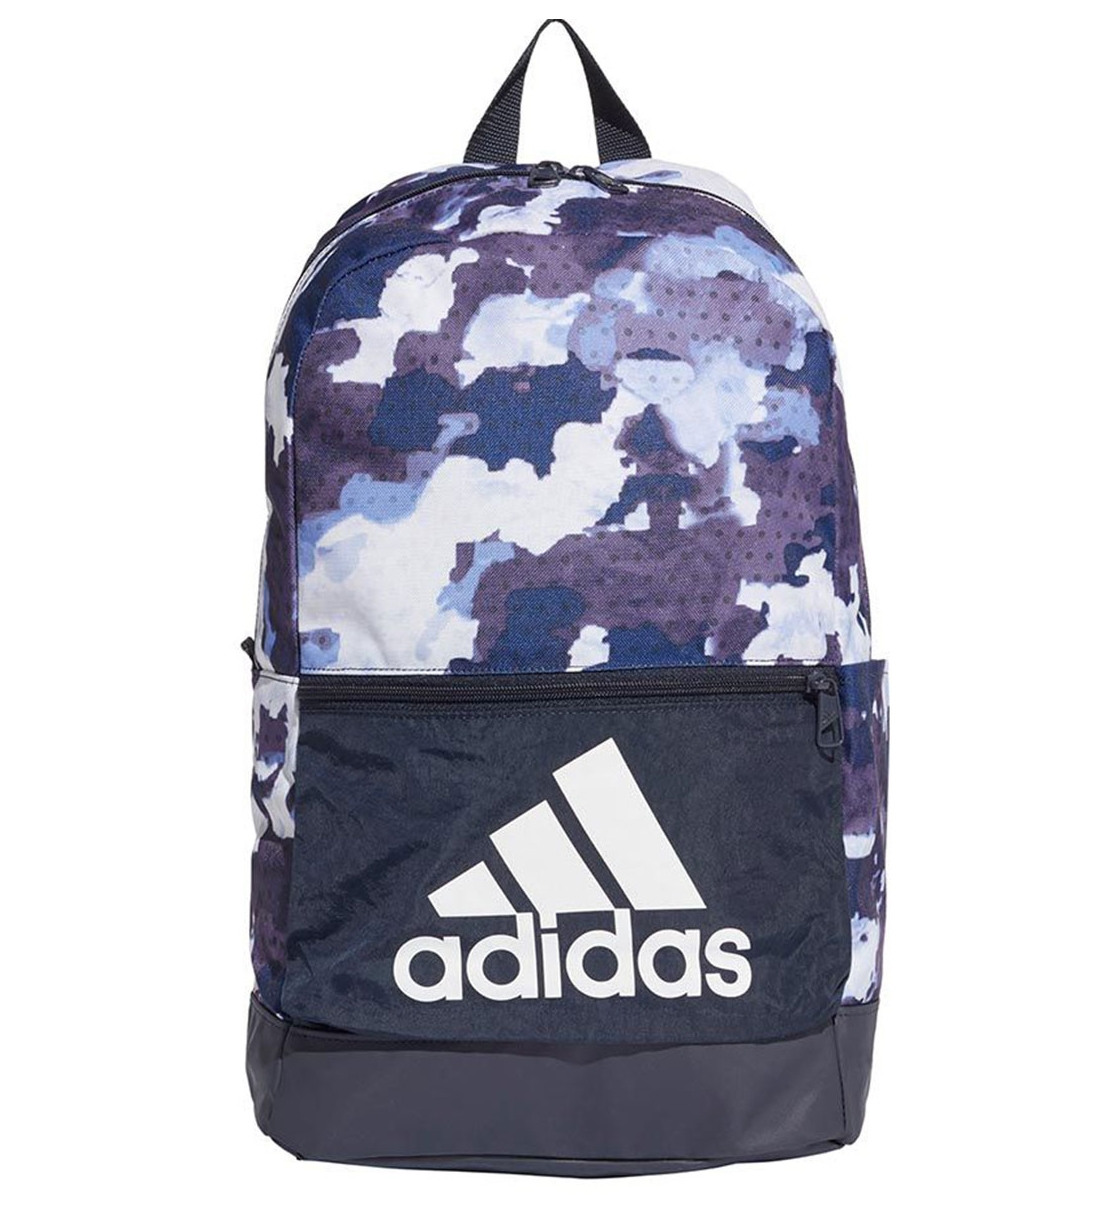 Adidas Fw19 Classic Backpack